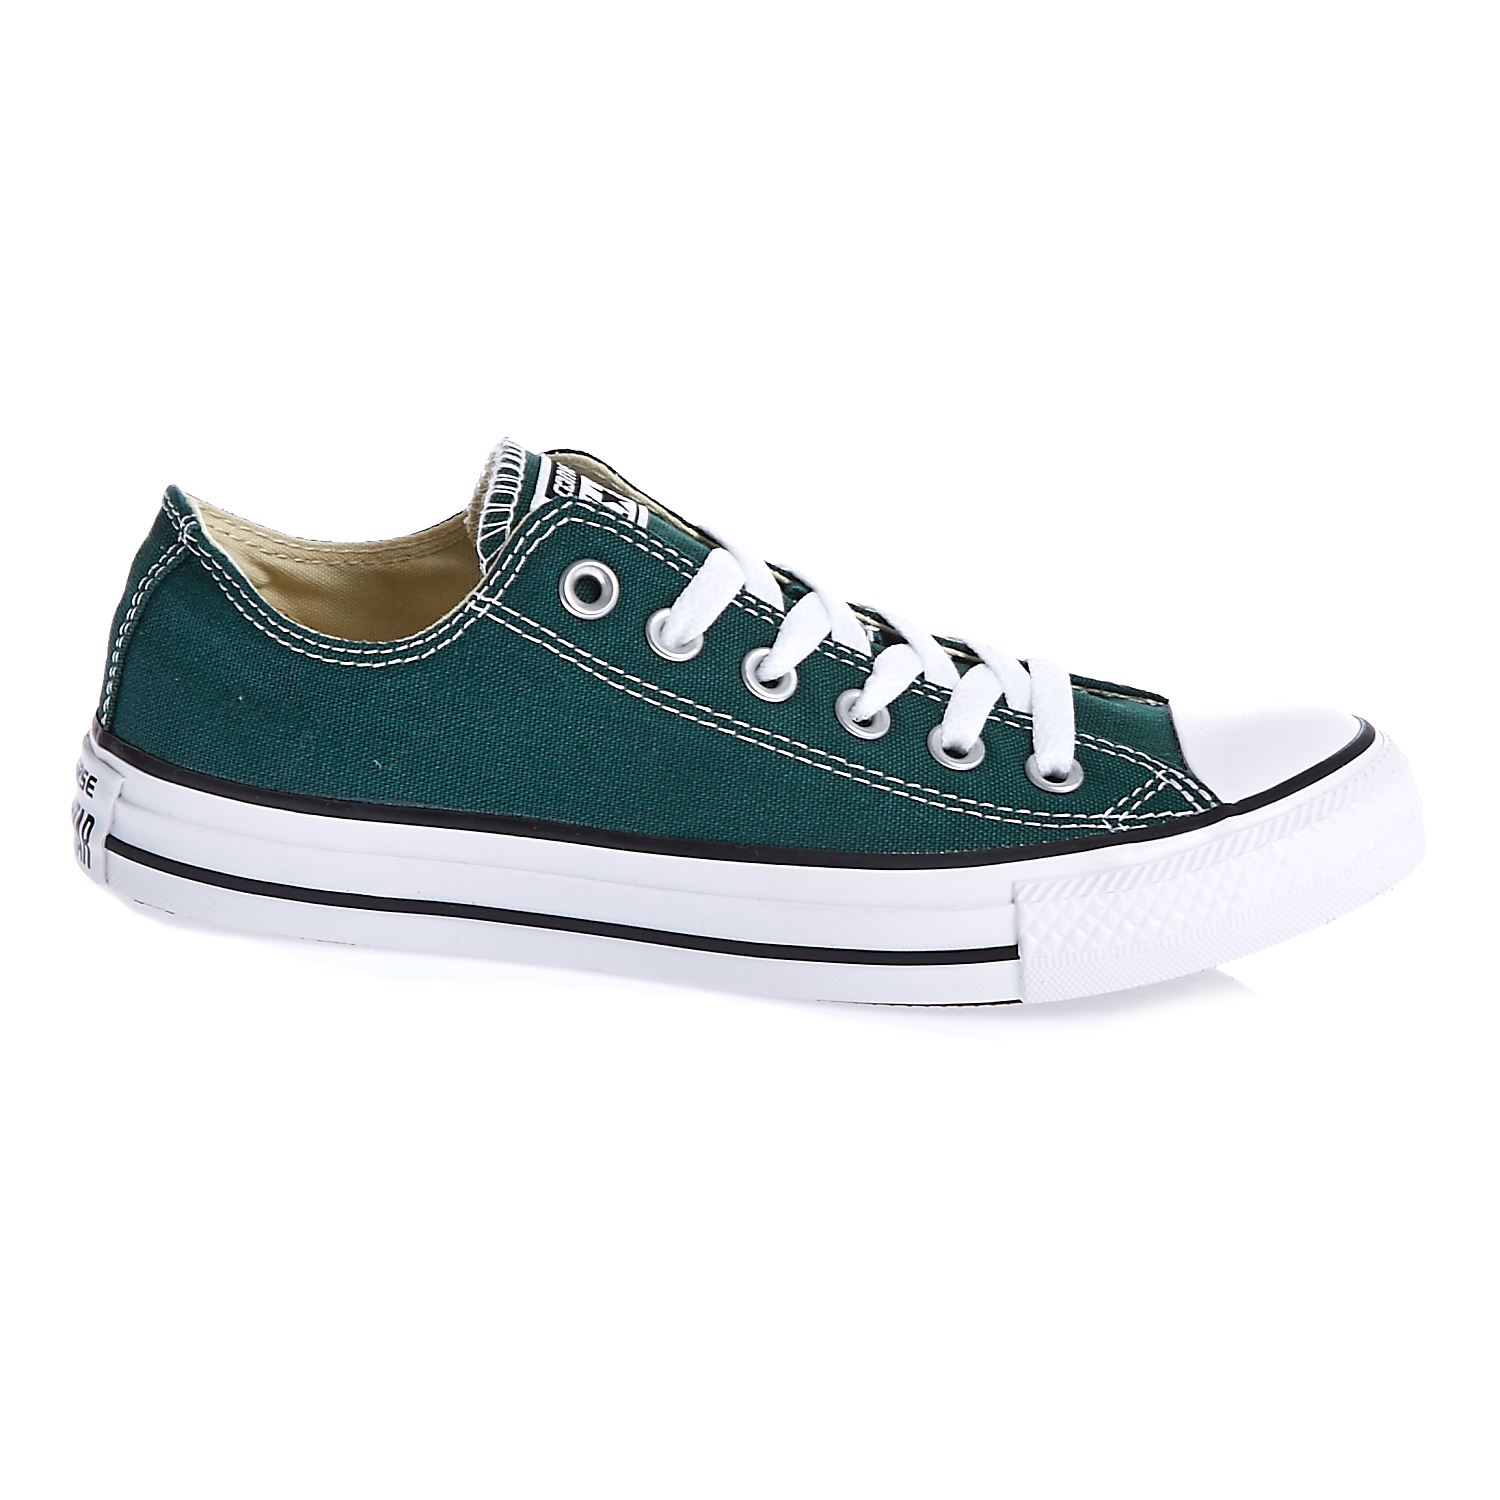 CONVERSE - Unisex παπούτσια Chuck Taylor All Star Ox πράσινα γυναικεία παπούτσια sneakers